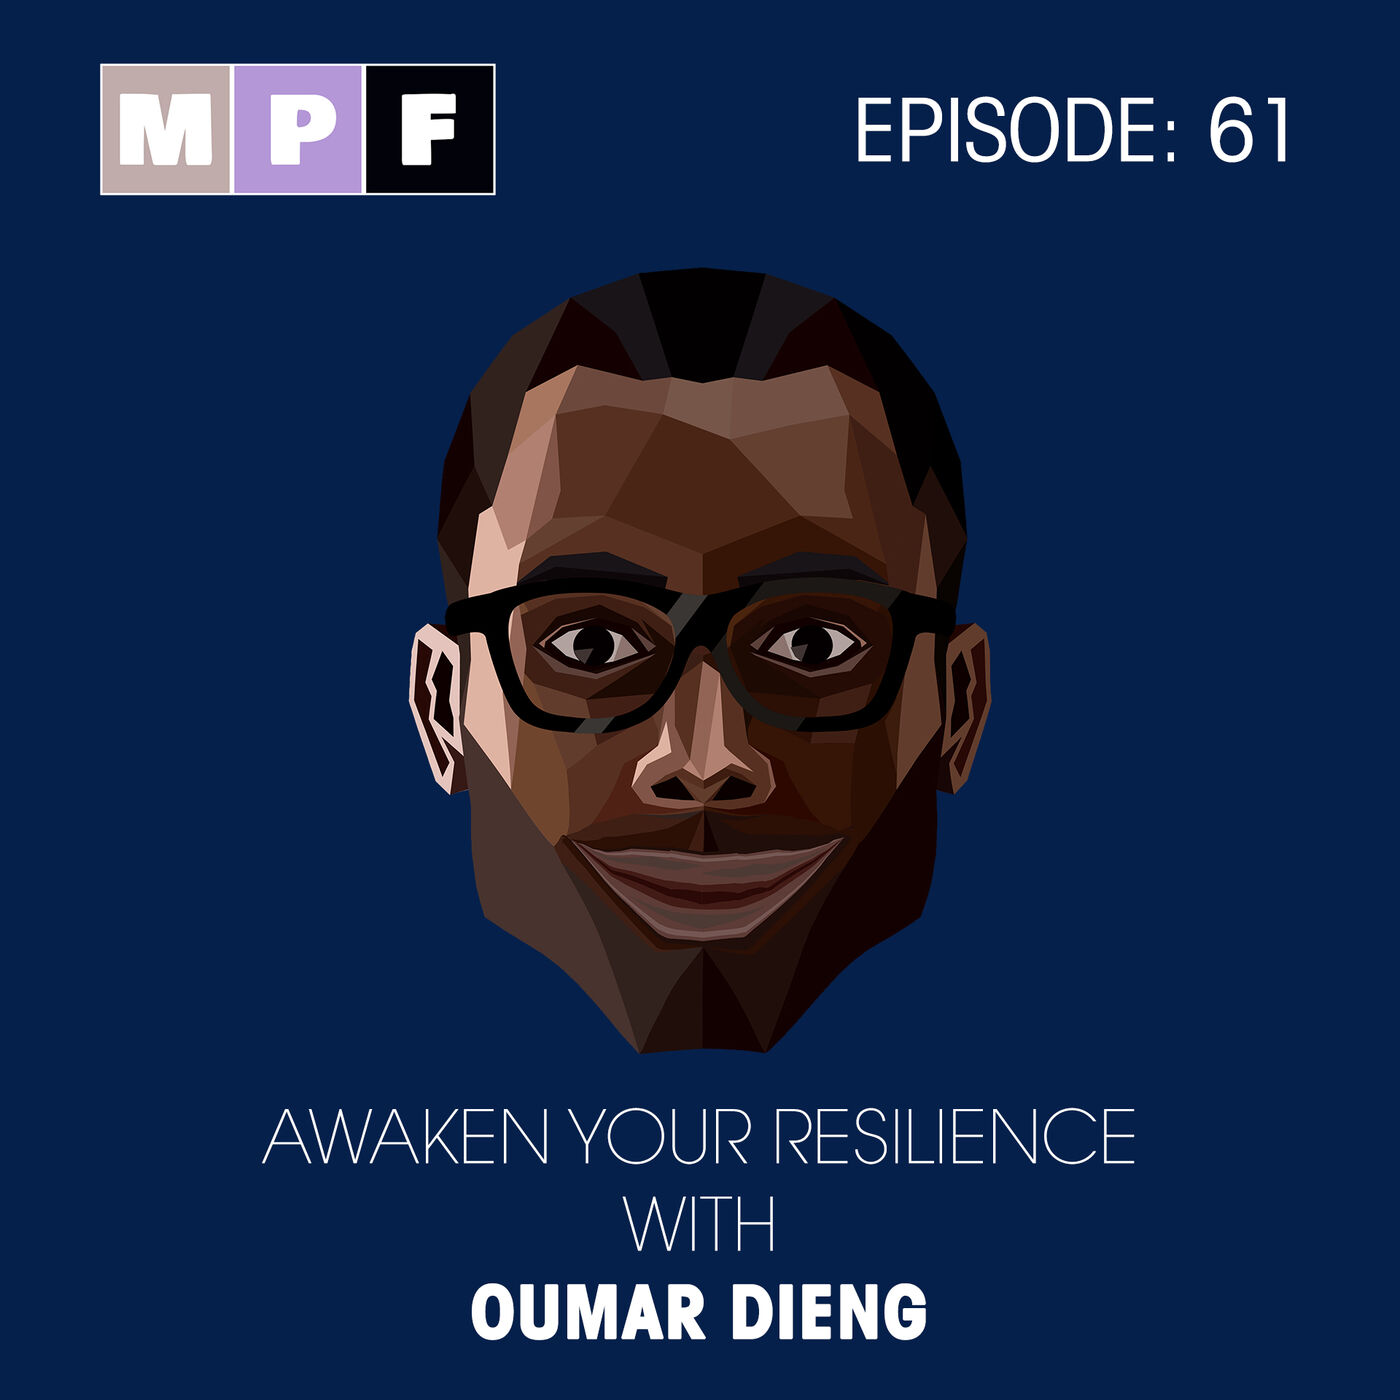 Awaken your Resilience with Oumar Dieng